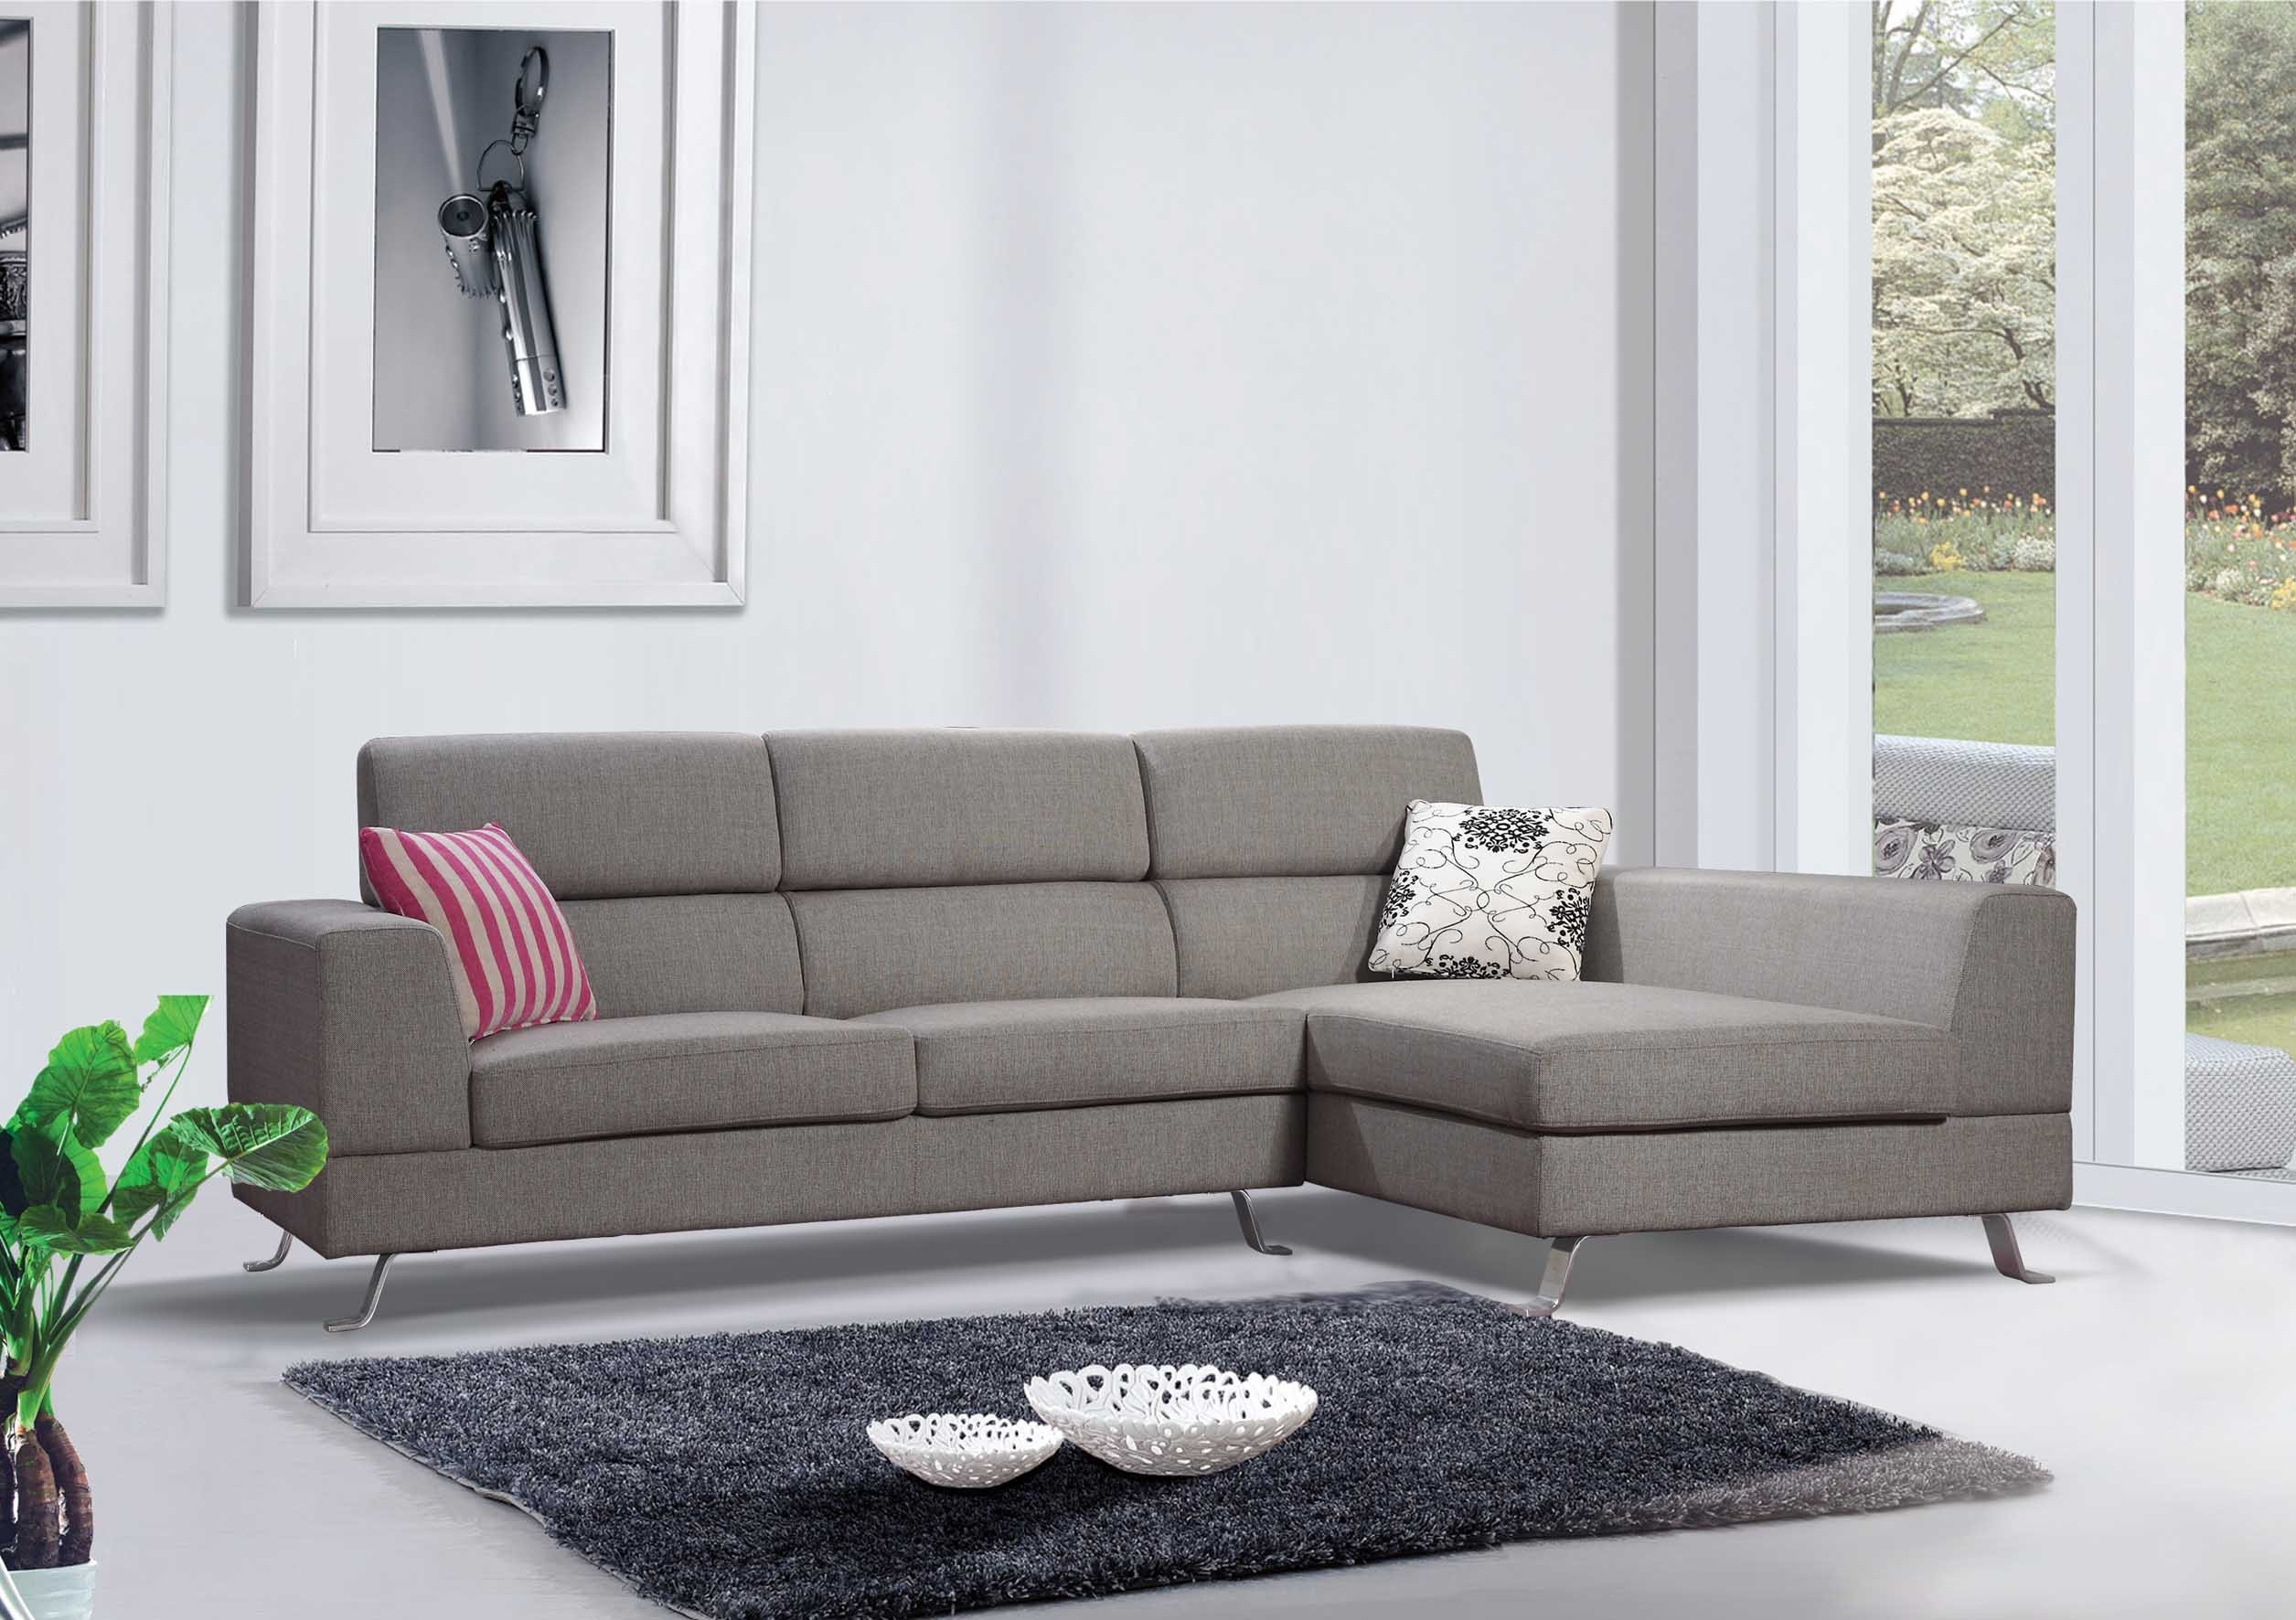 Kileen Modern Contemporary Grey Linen Fabric Sectional Sofa